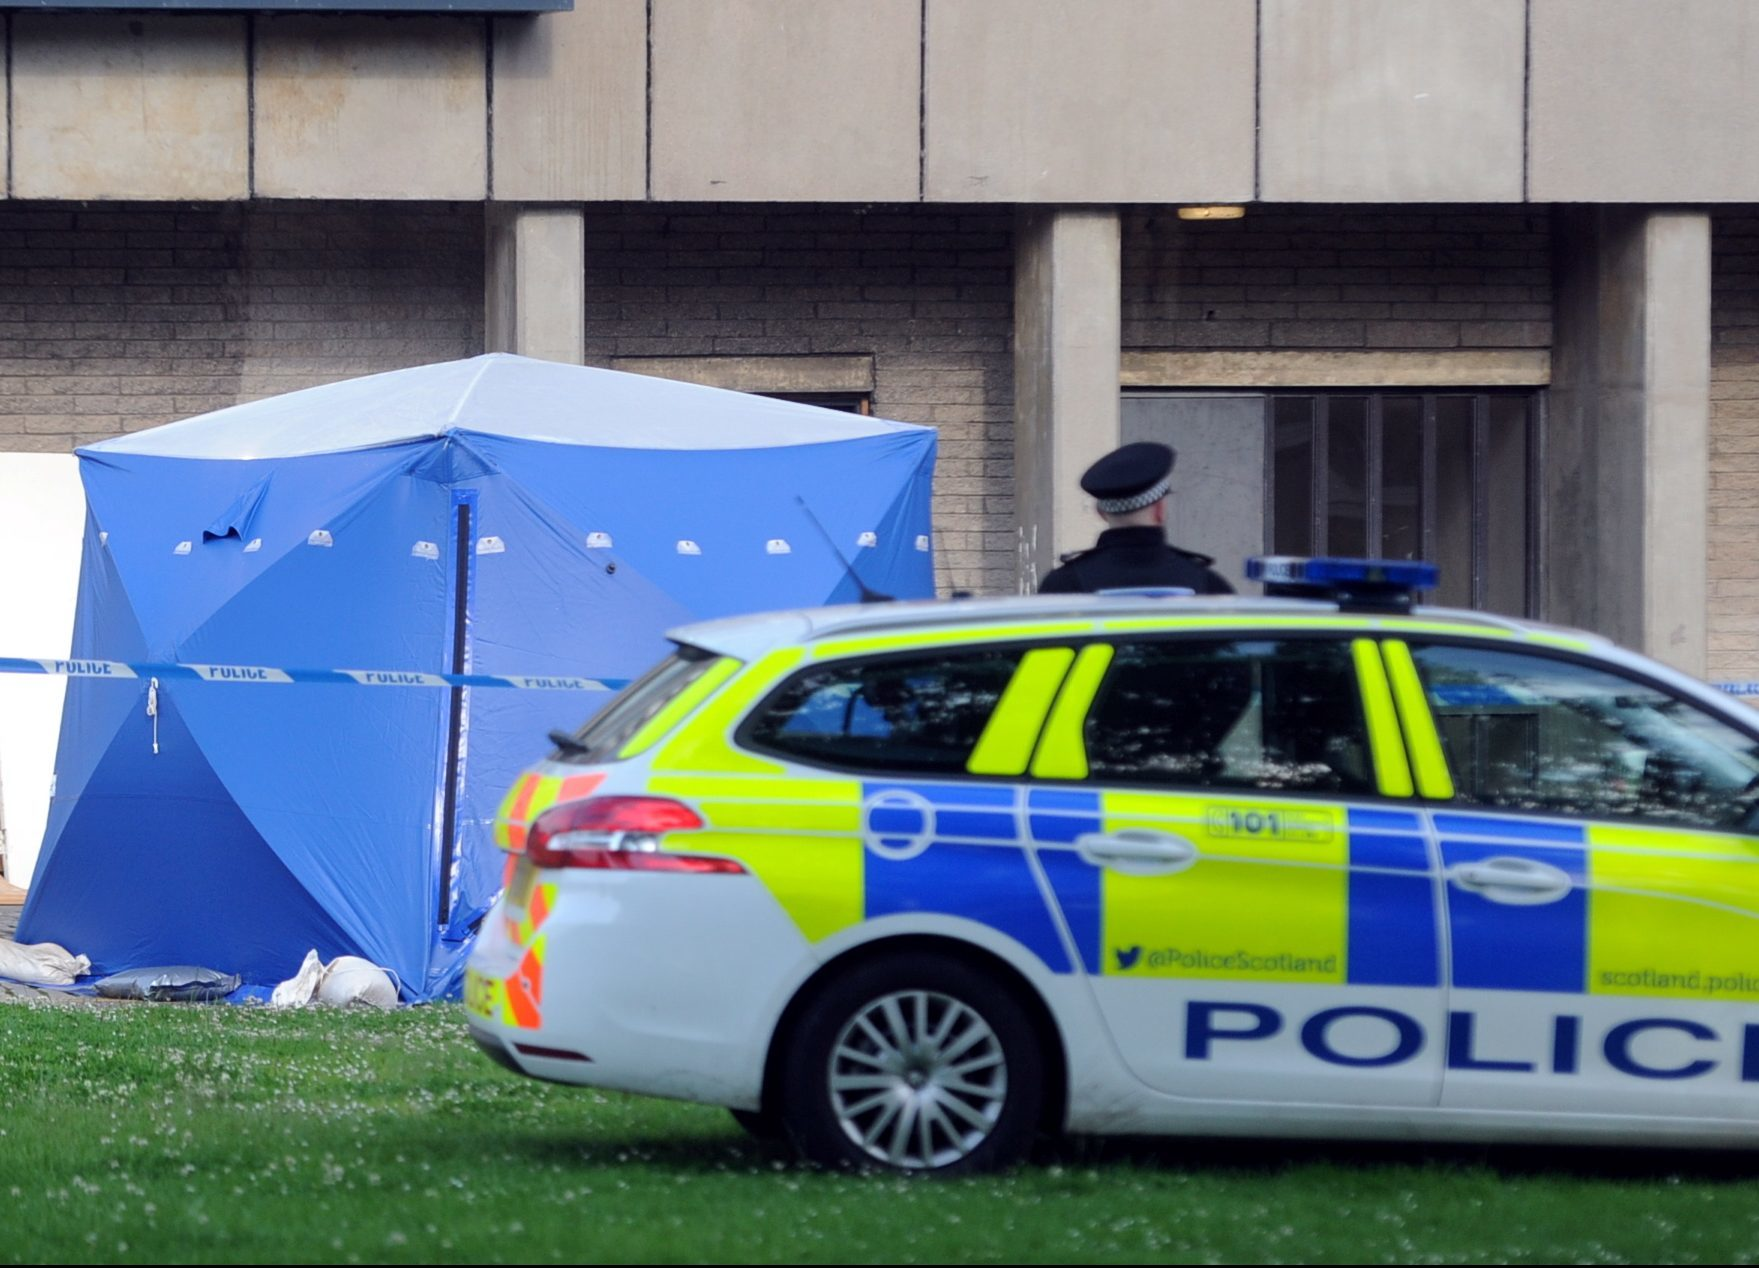 Police on the scene at Donside Court, where three people died